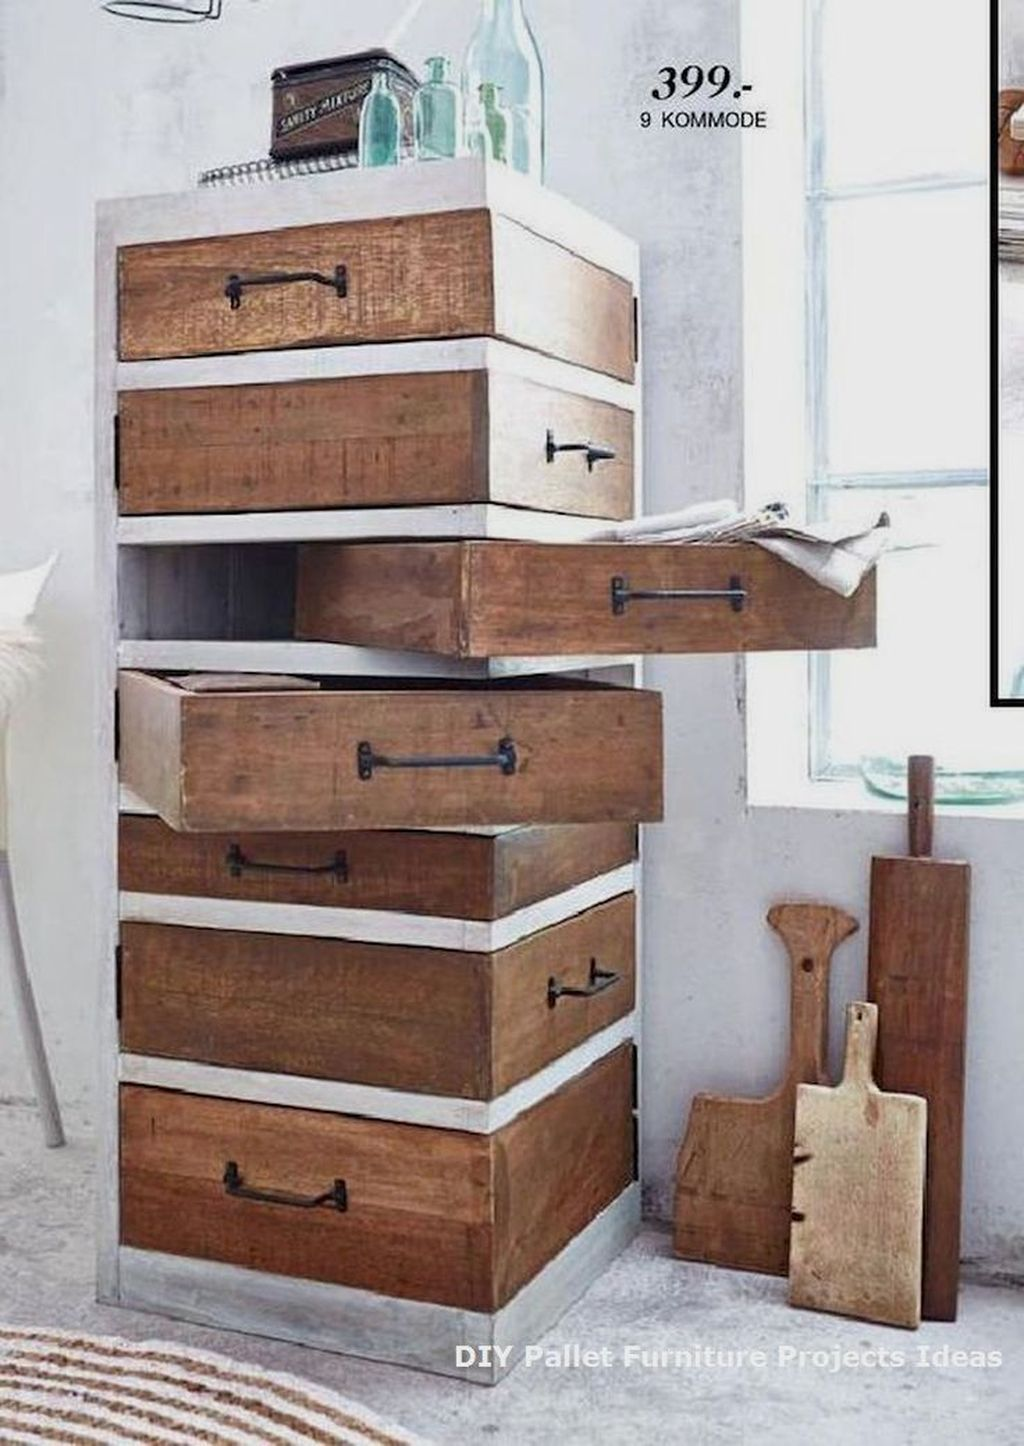 Download Good DIY Furniture from trendehouzz.com